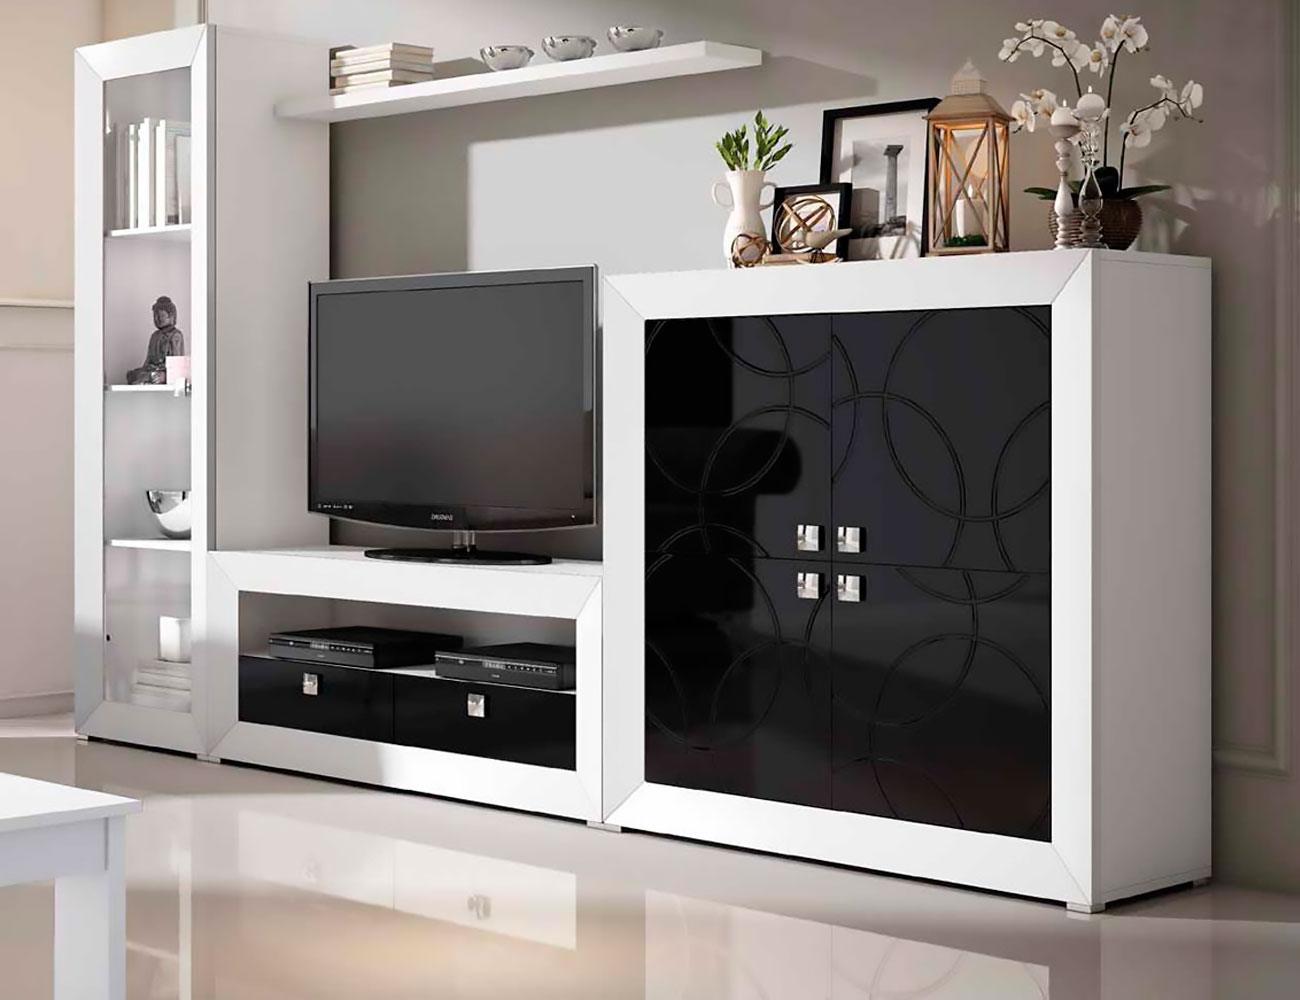 Mueble de sal n modular moderno lacado 2452 factory for Muebles modulares salon modernos